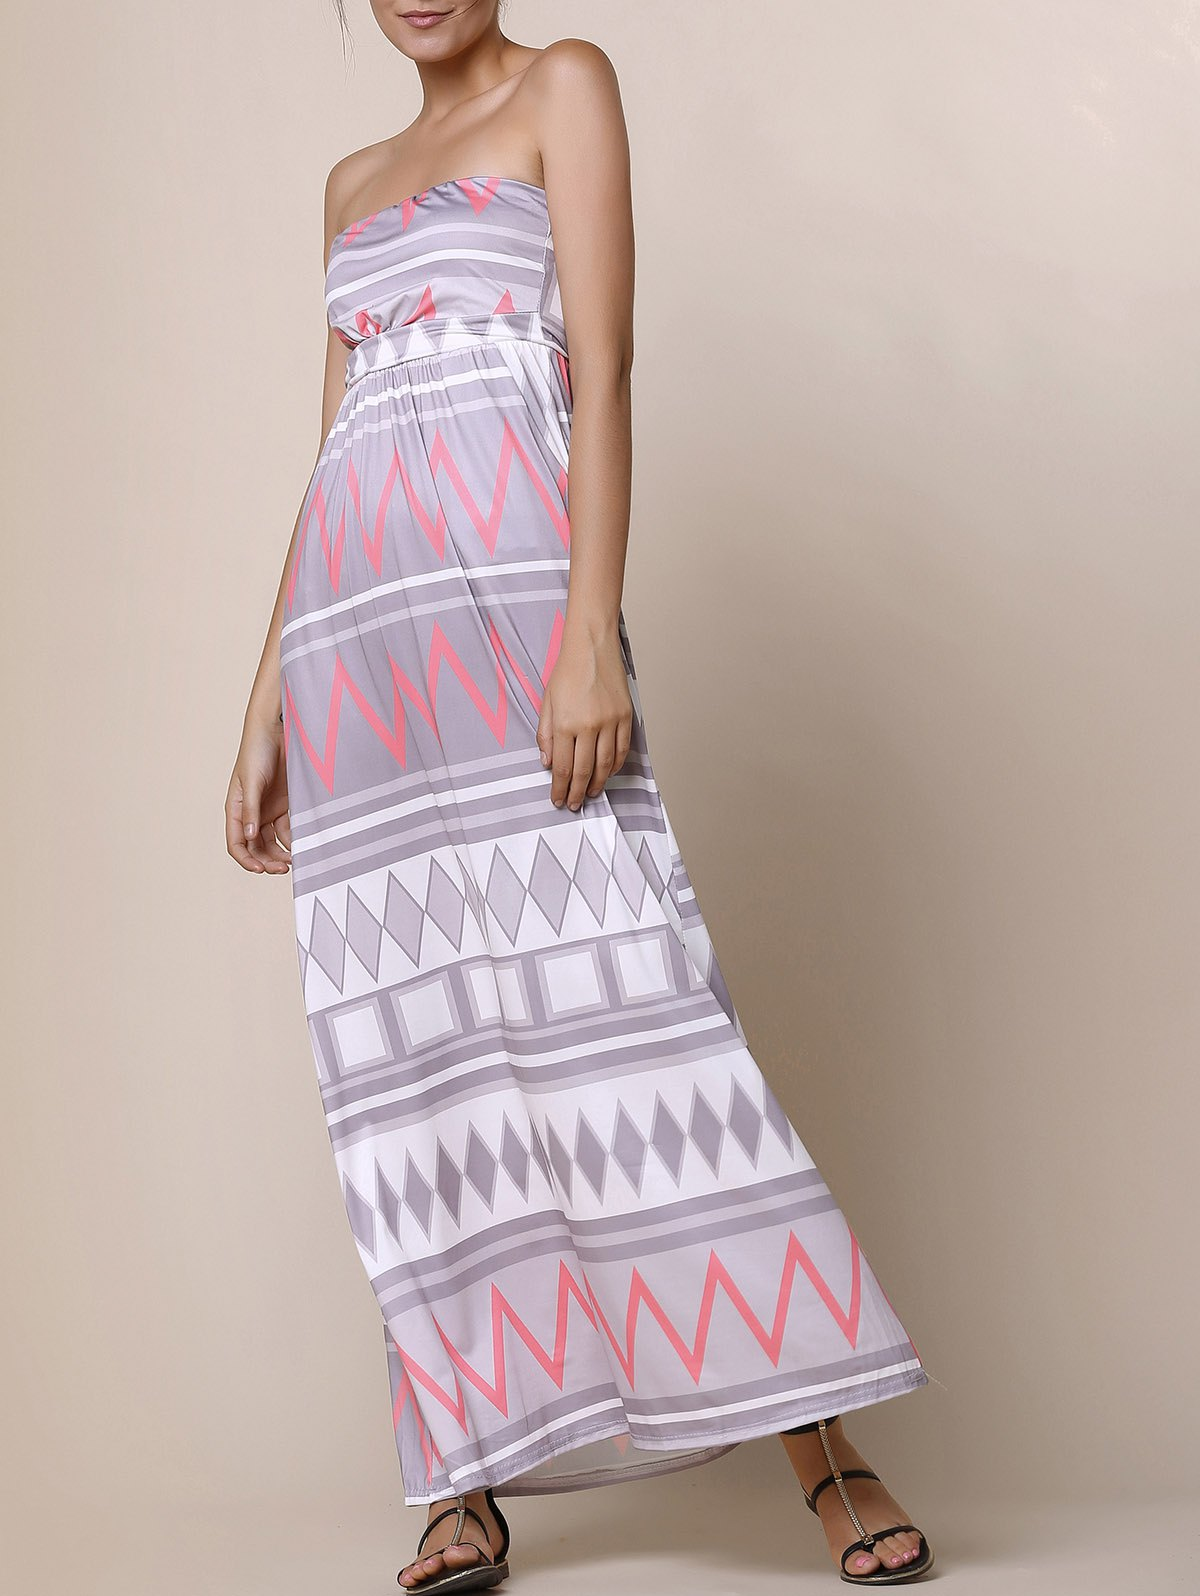 Sexy Zigzag Strapless Sleeveless Dress For Women - COLORMIX M